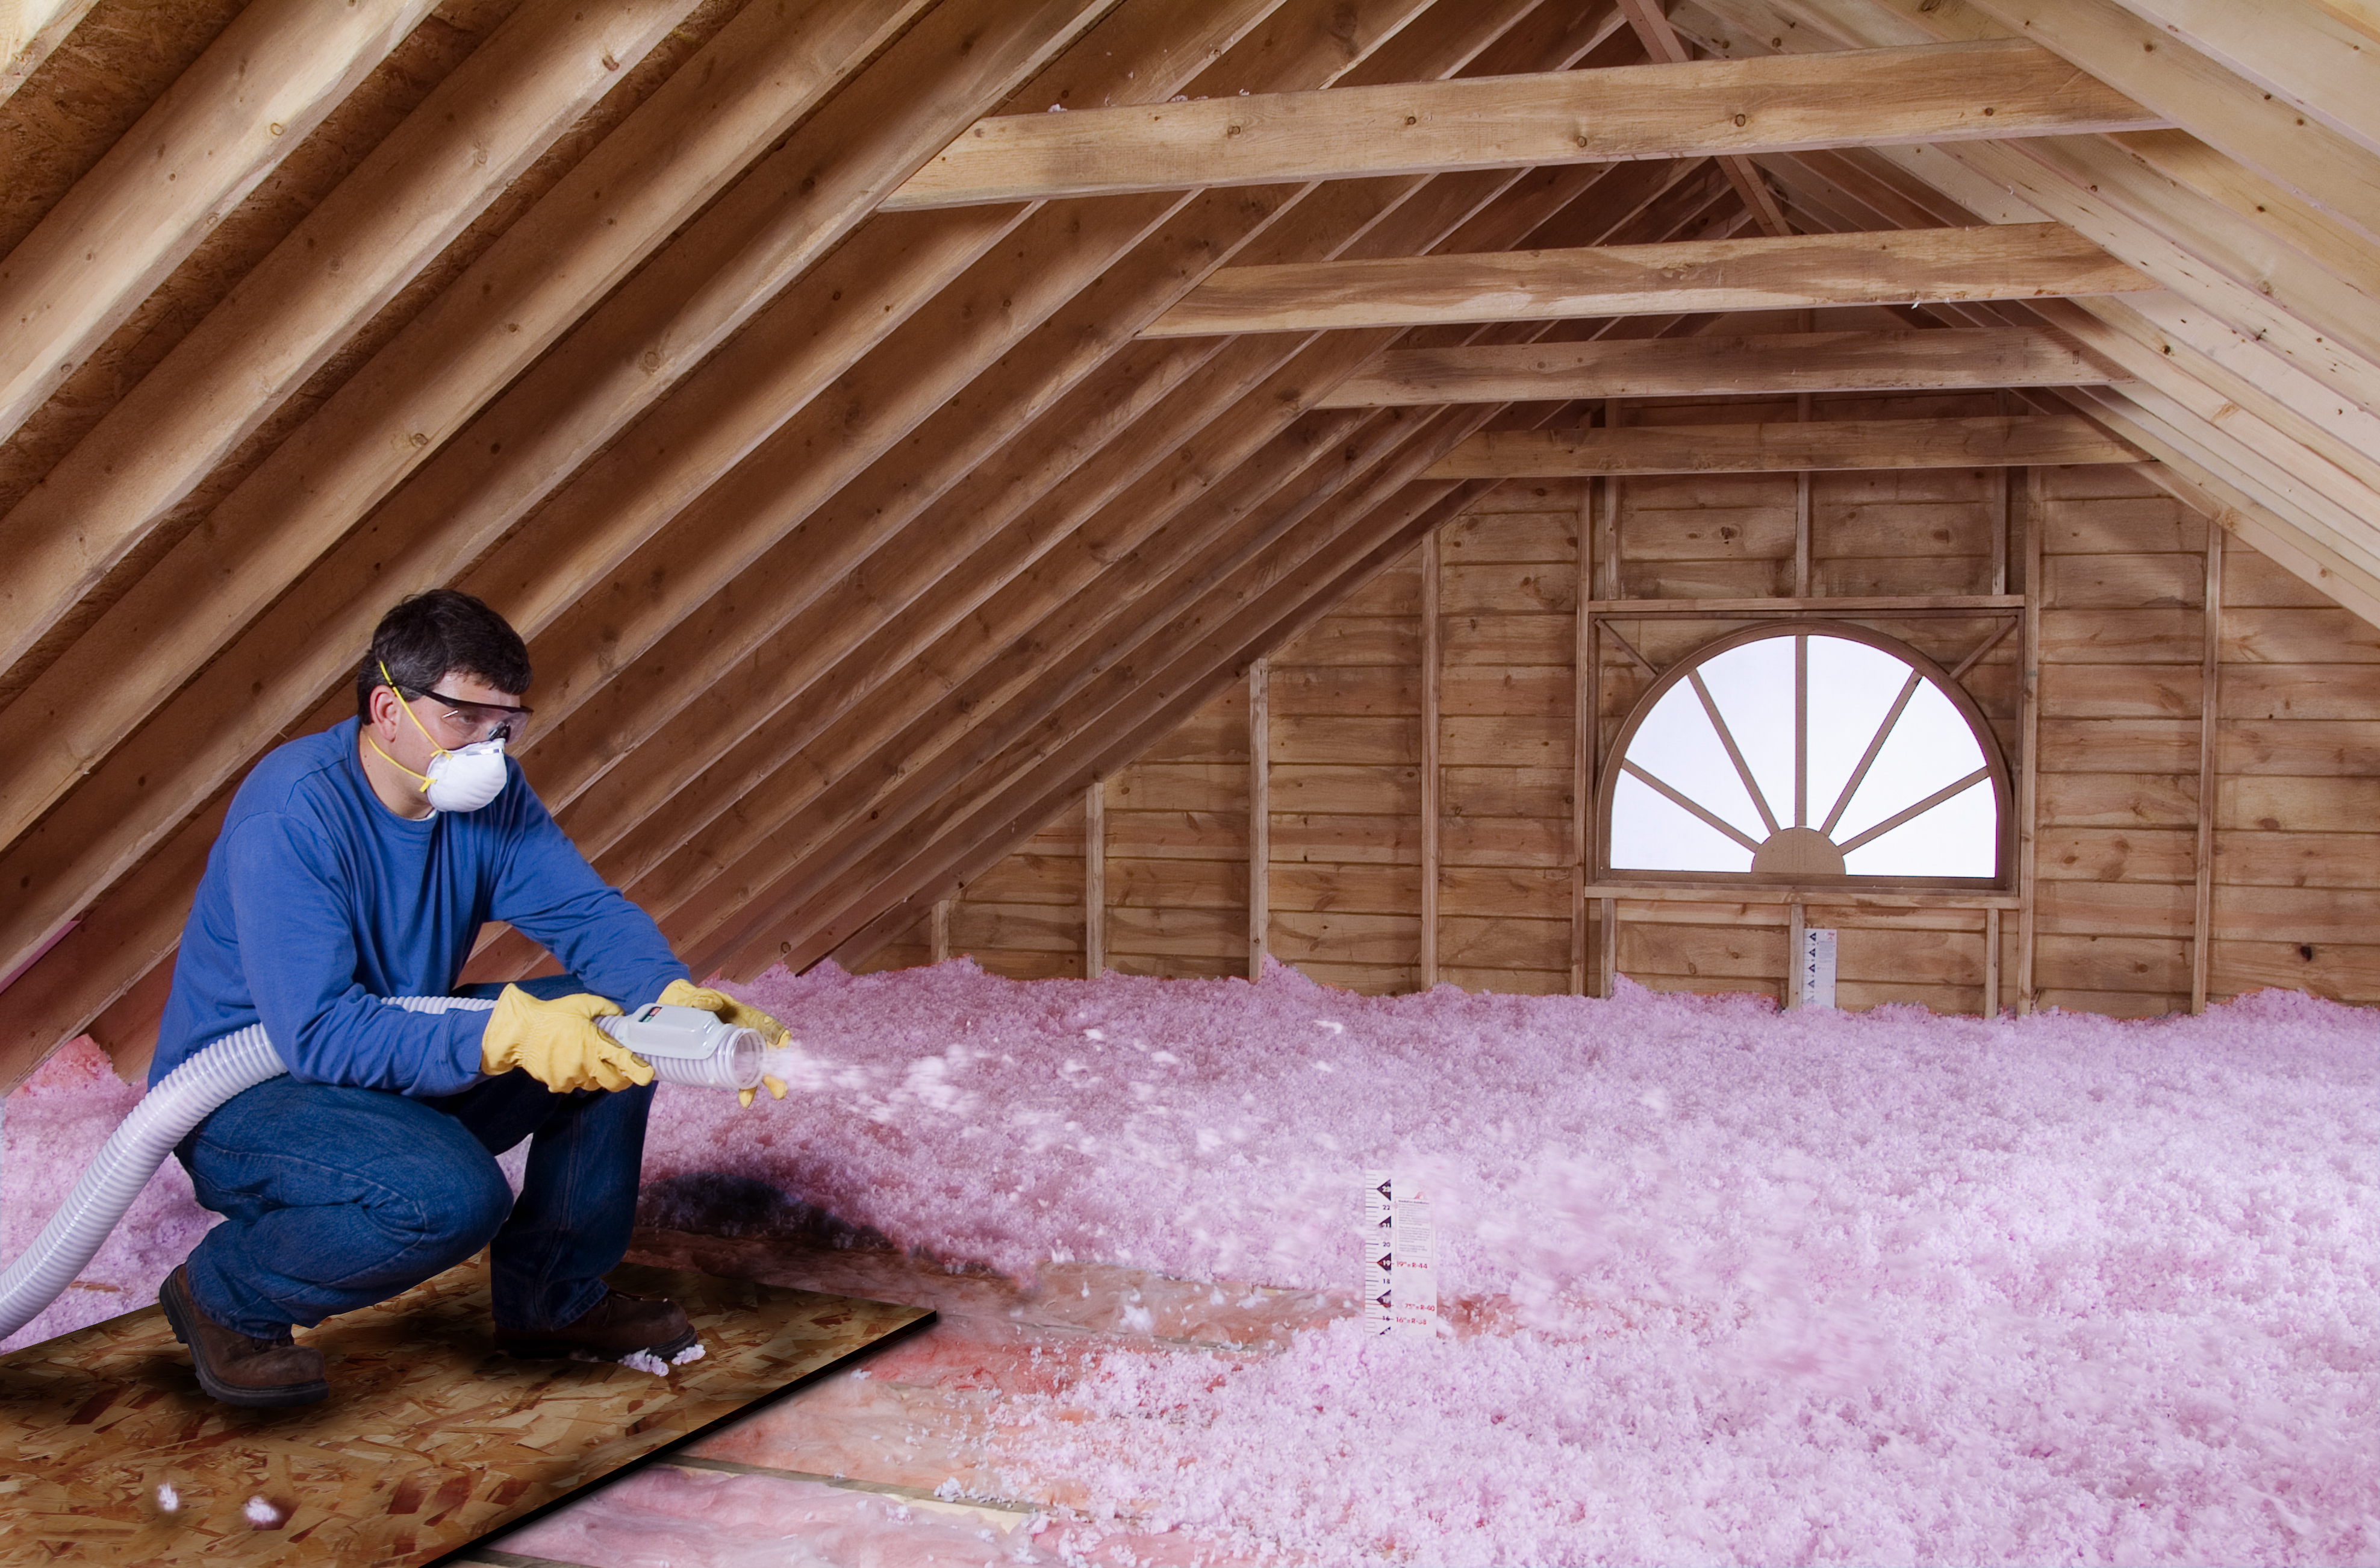 home insulation Insulating your home let hgtv be your guide in selecting the right insulation type for your attic, windows, and more.